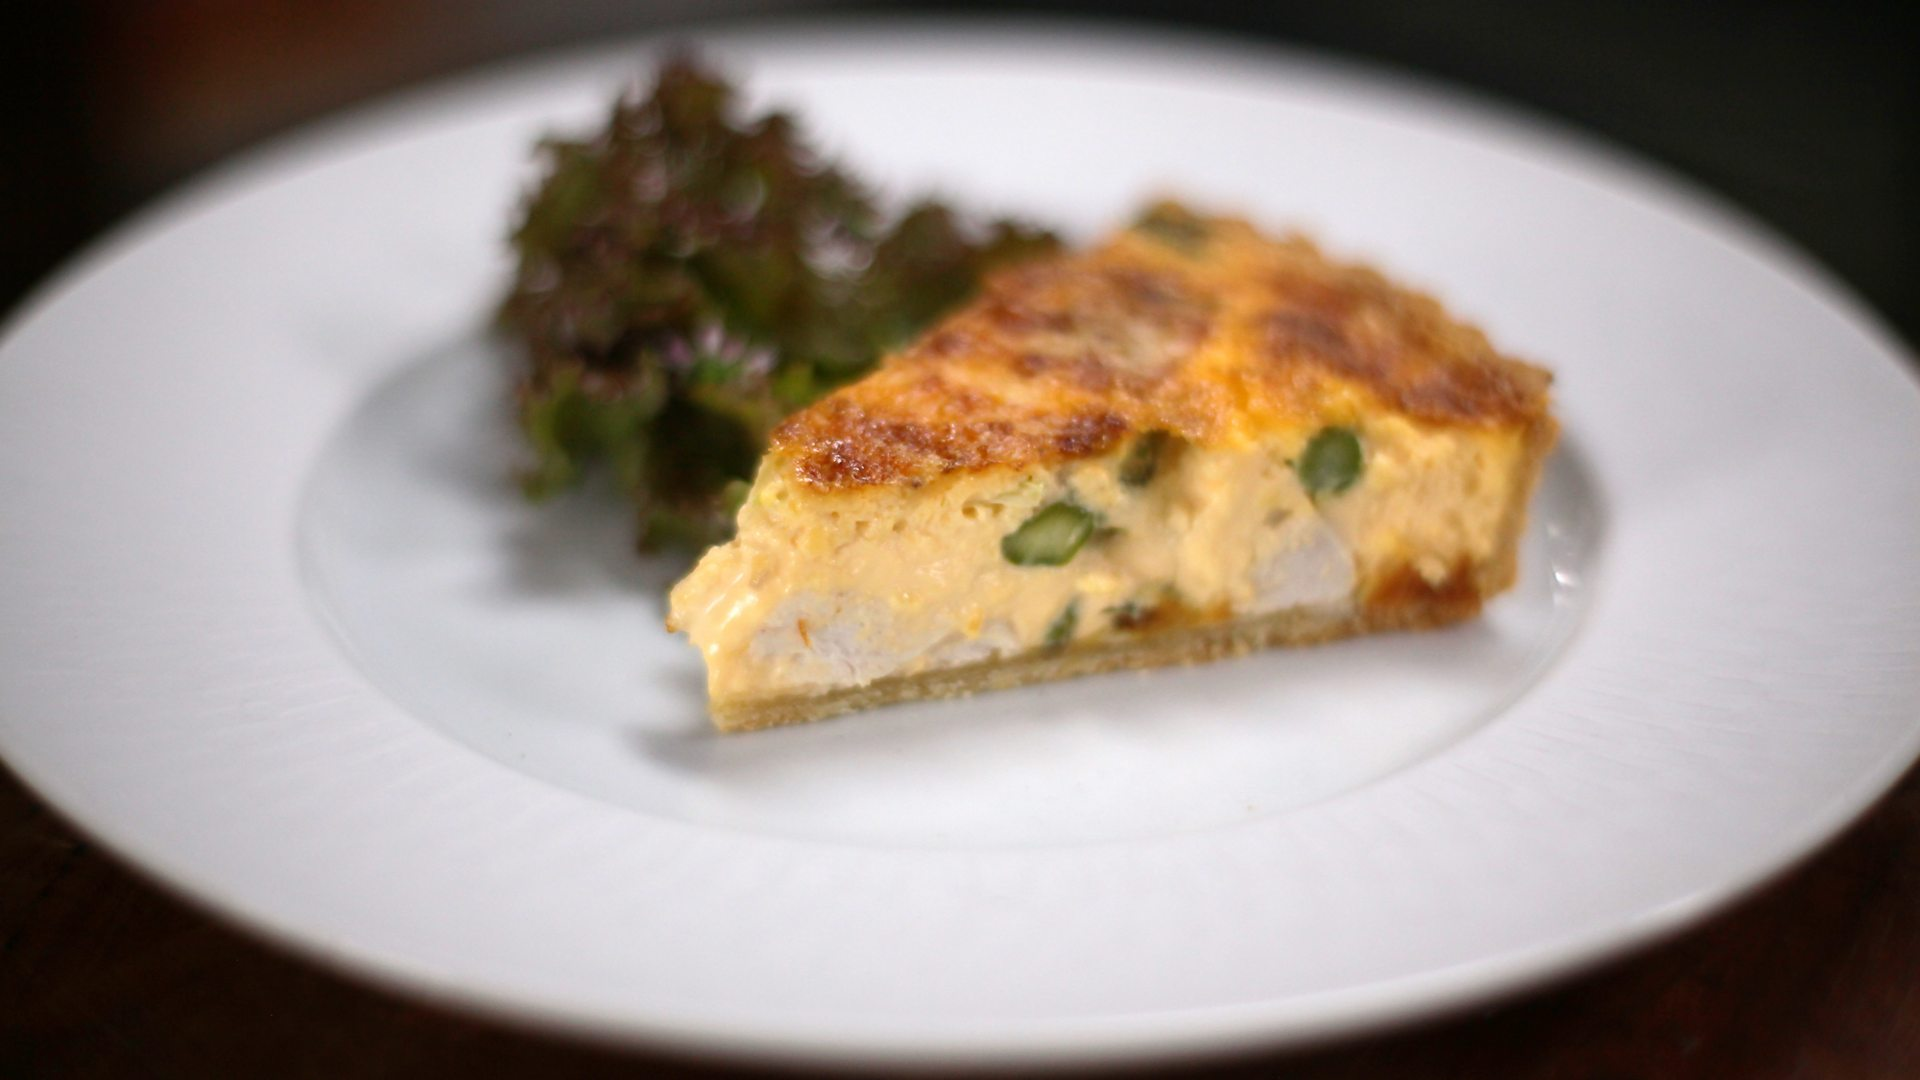 Bbc two james martin home comforts series 2 two from one bbc two james martin home comforts series 2 two from one chicken and asparagus quiche forumfinder Image collections